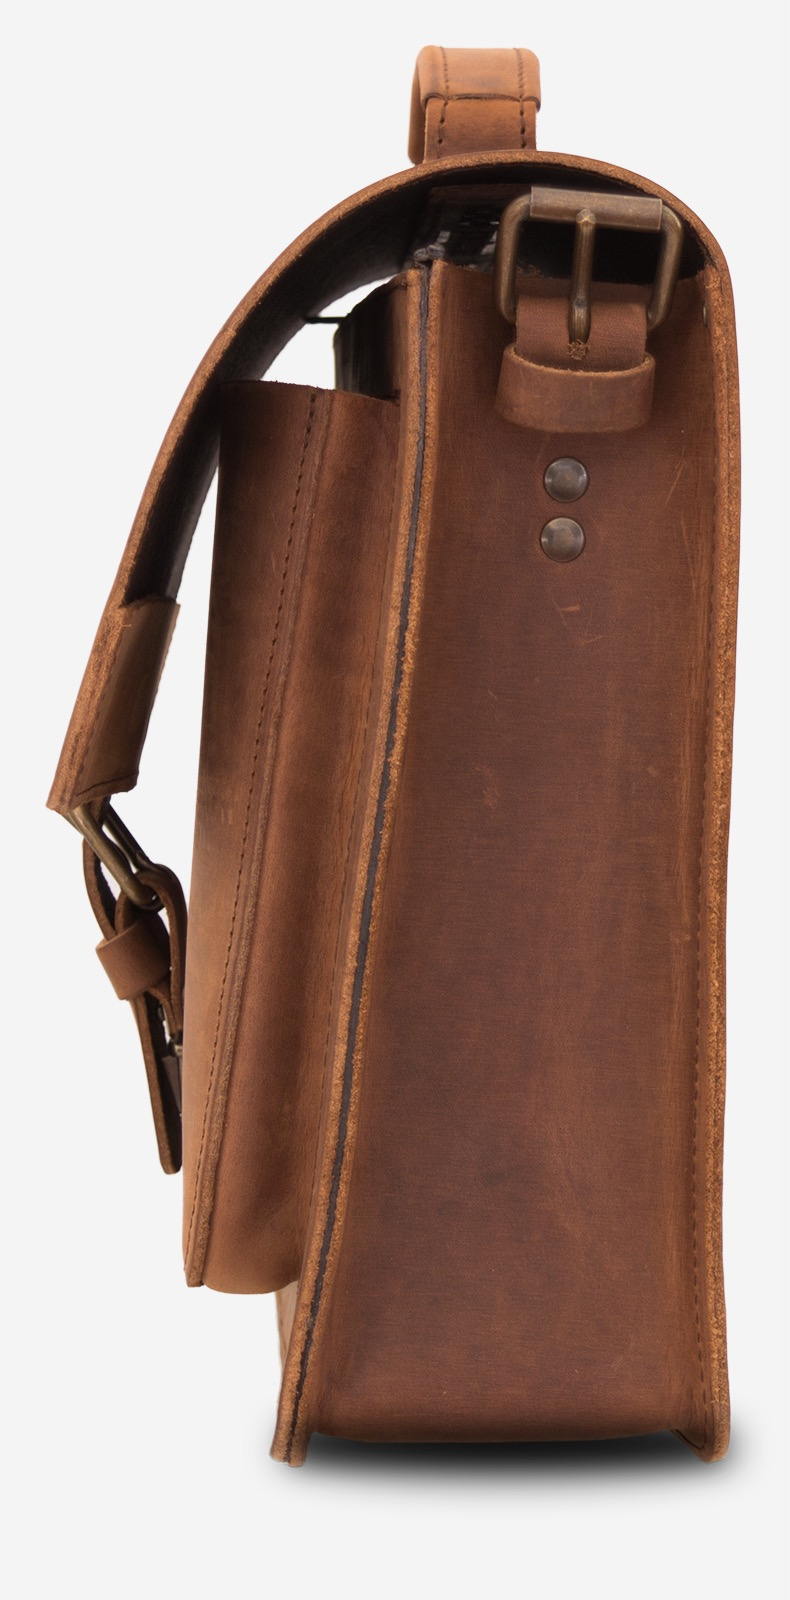 Side view of the brown leather briefcase with a single compartment and a front pocket.